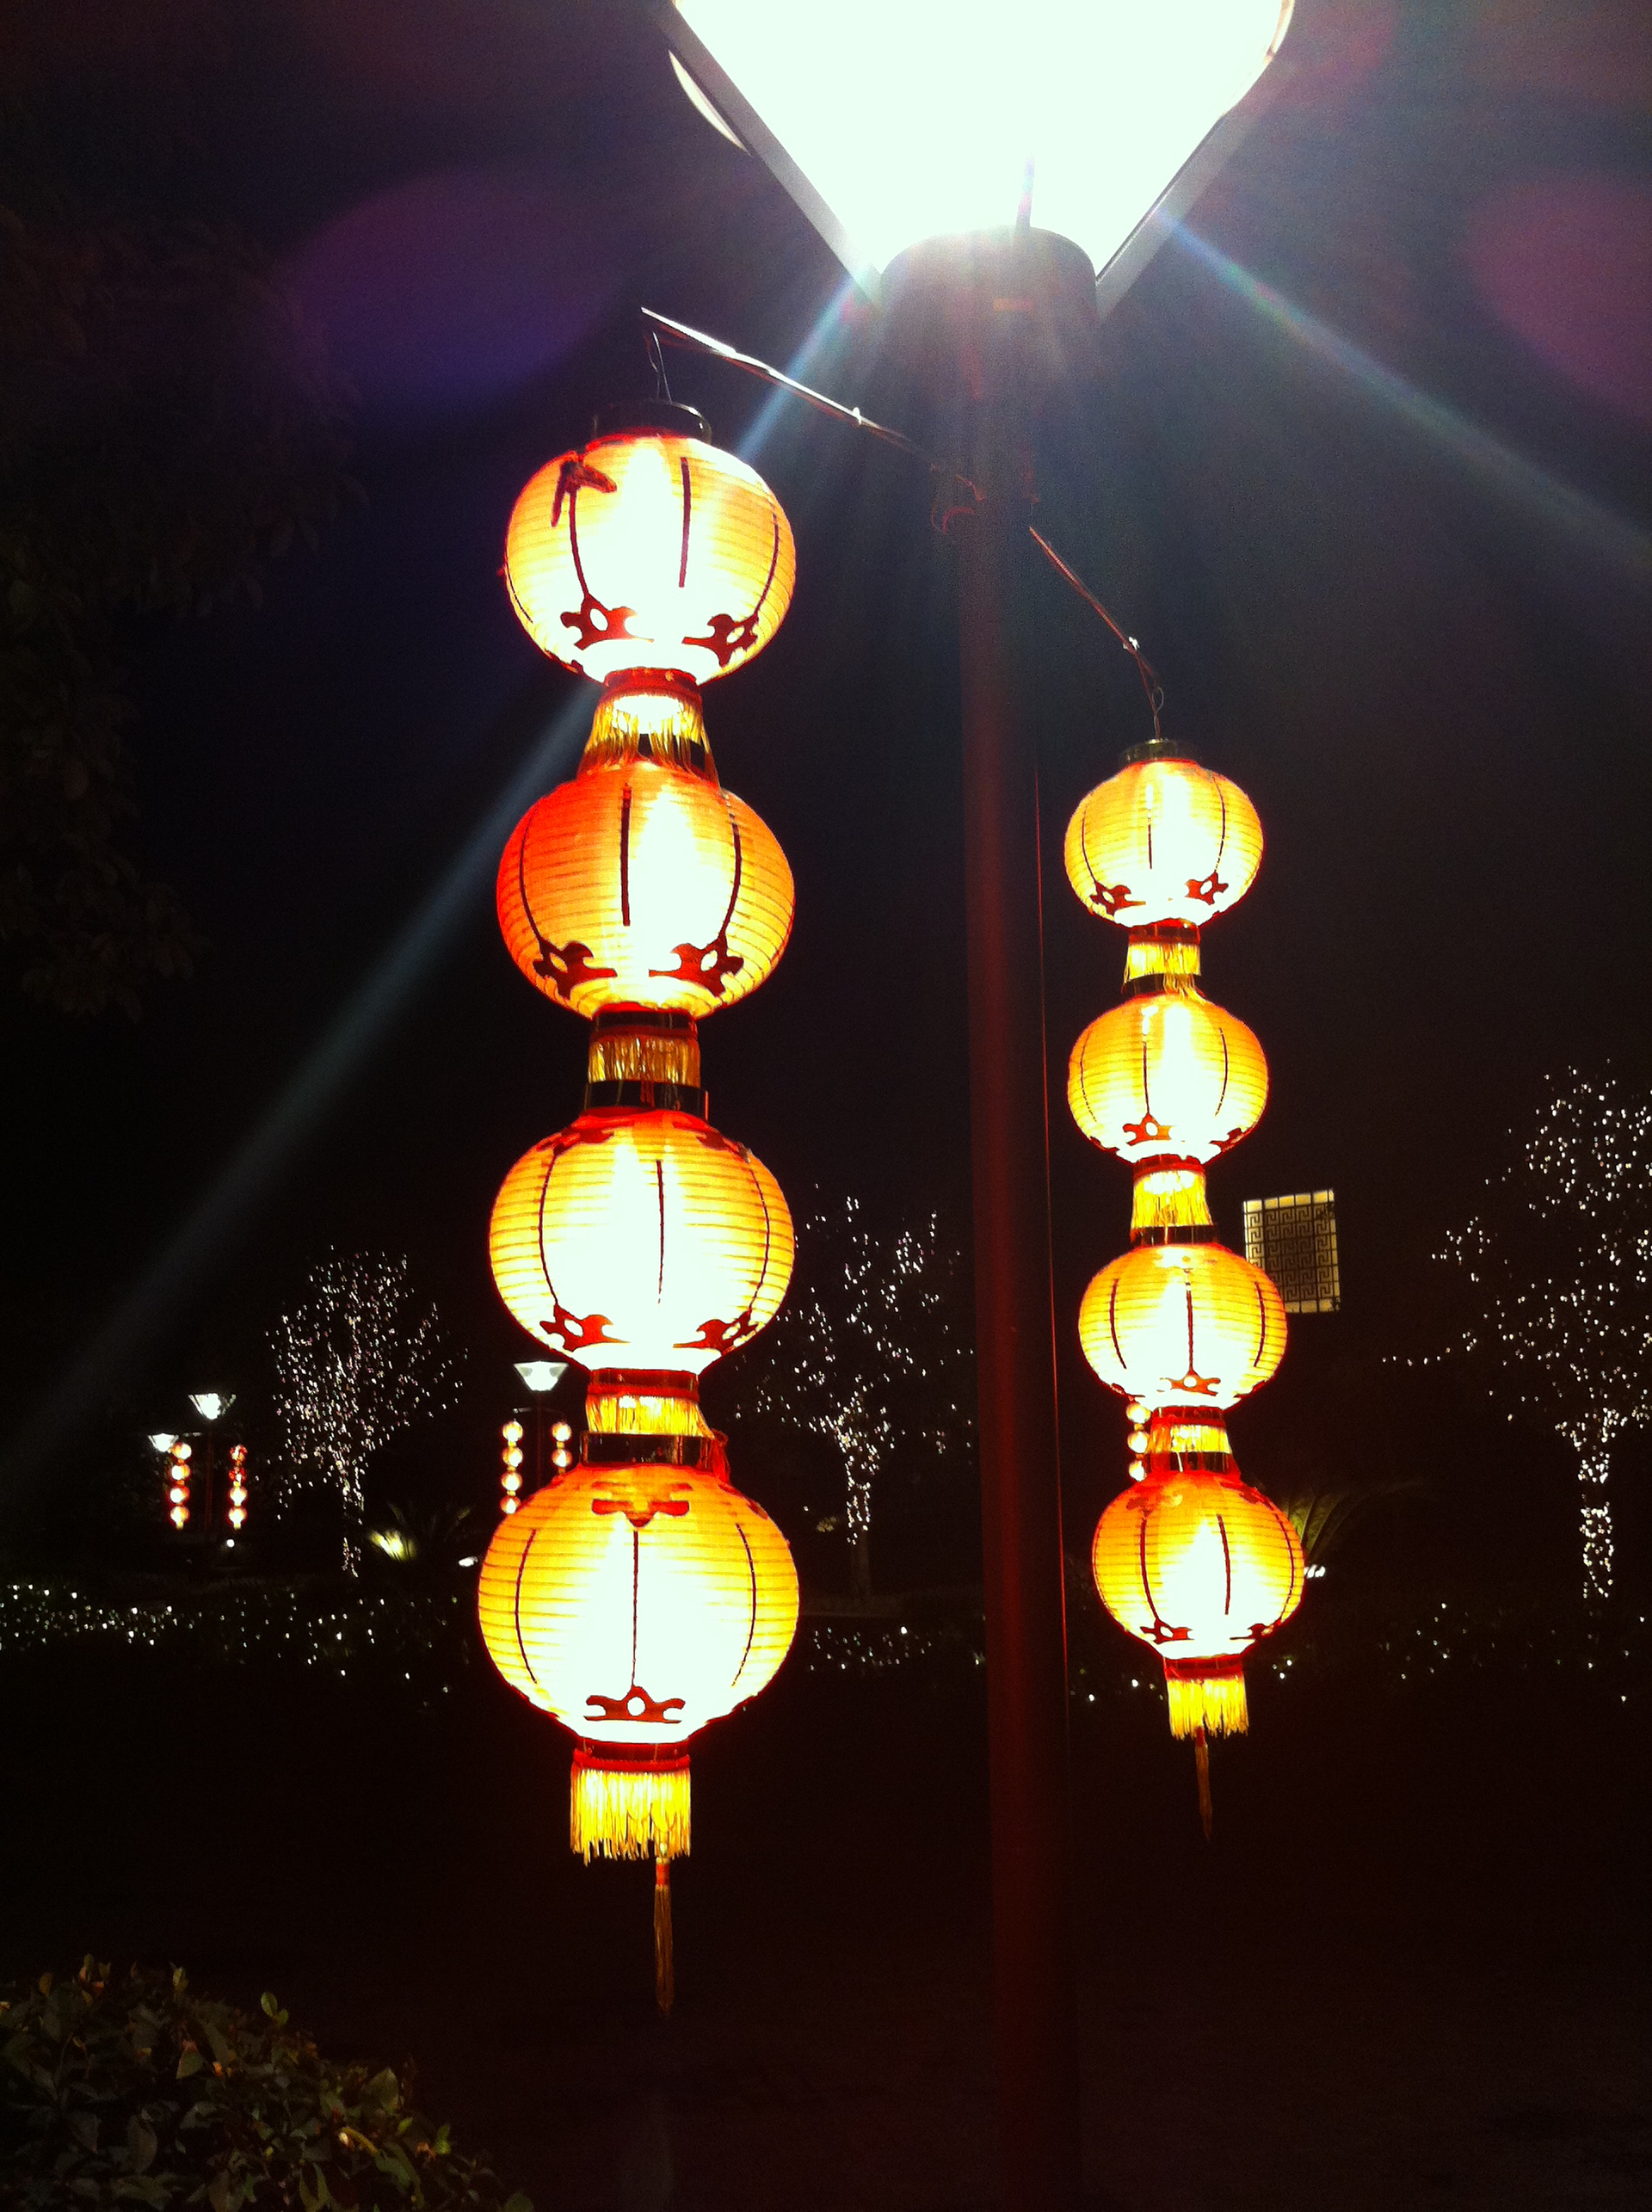 Lantern display in China. | china, lantern, cedman888, guilin